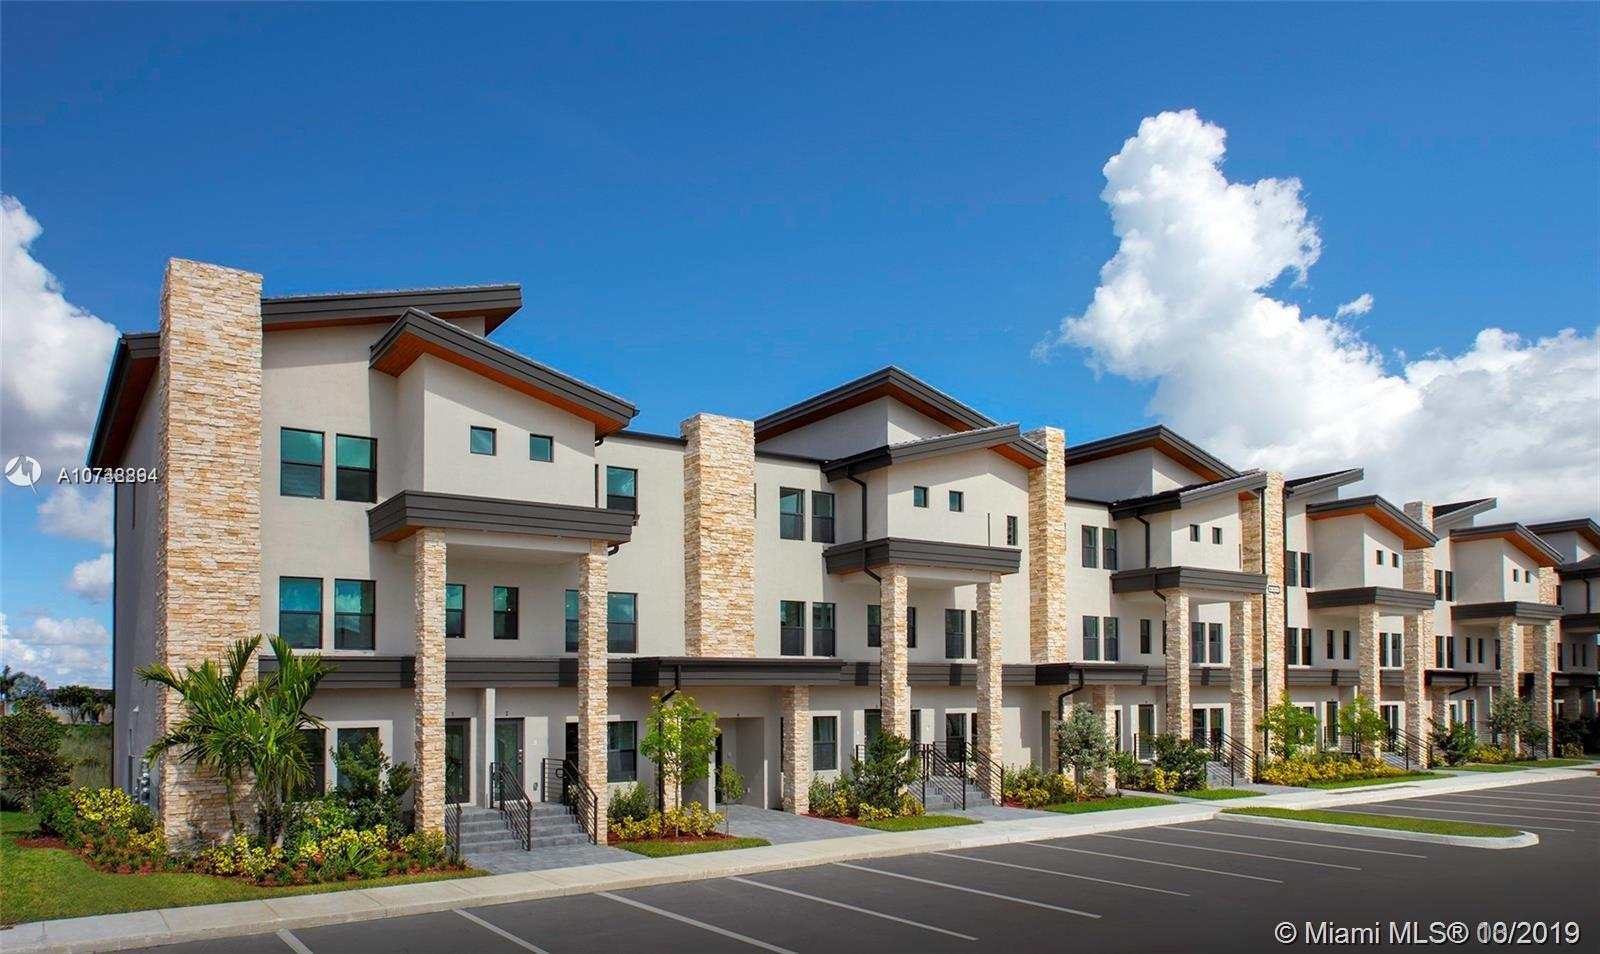 10413 NW 82 #33 For Sale A10748894, FL